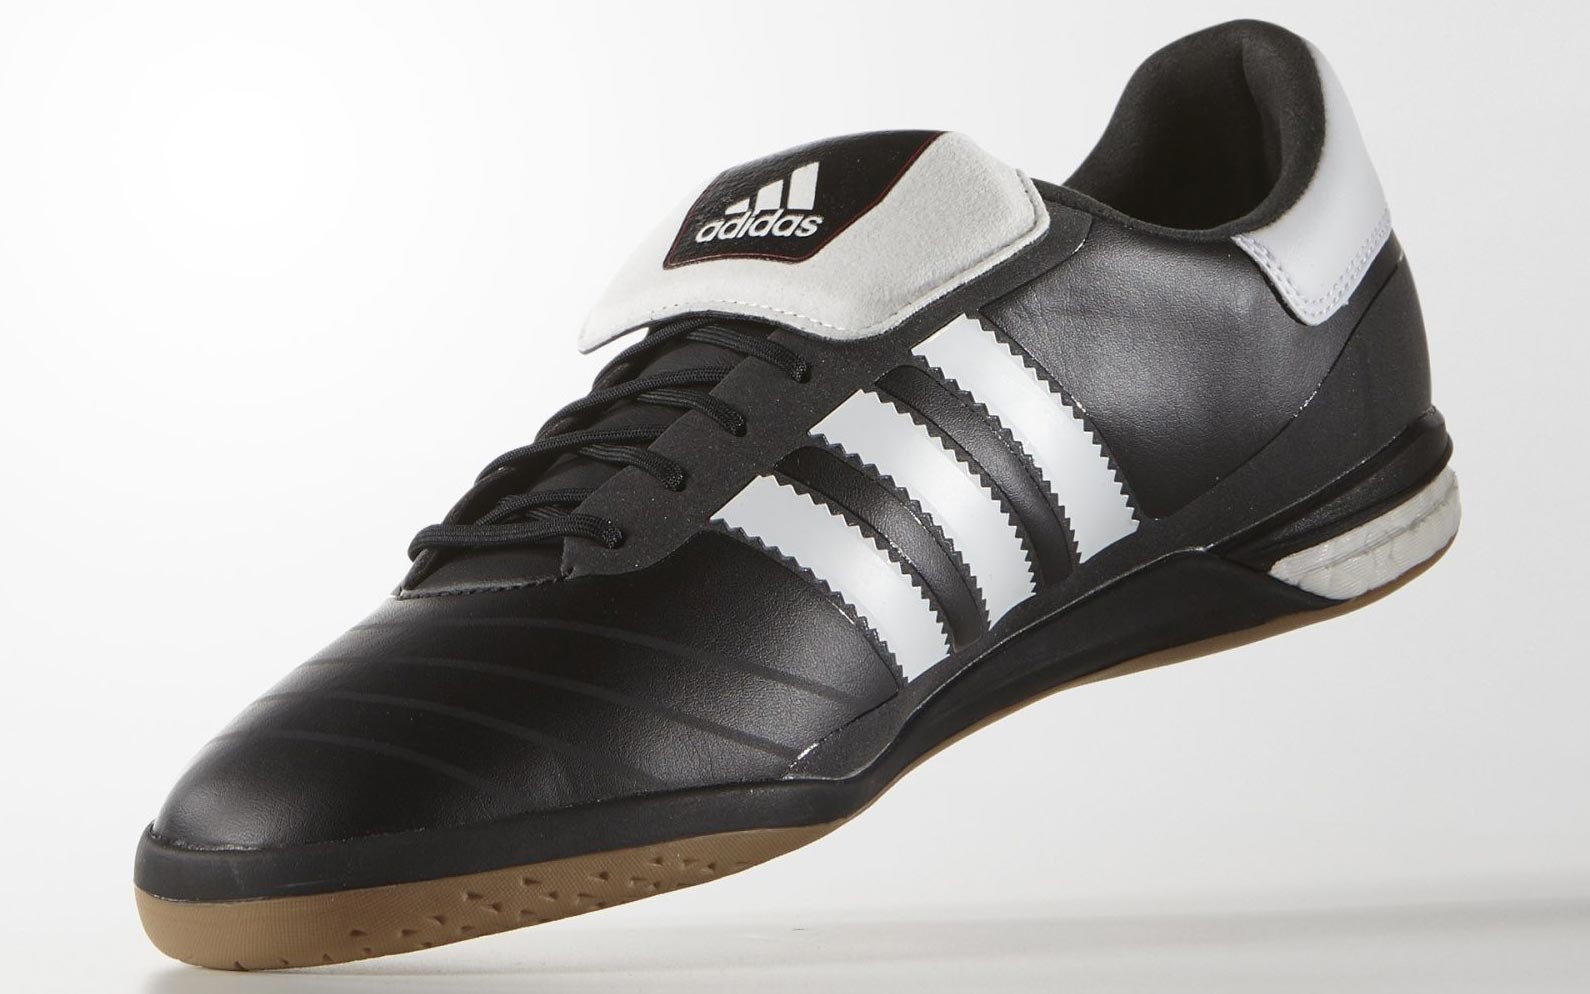 adidas copa mundial indoor soccer shoes